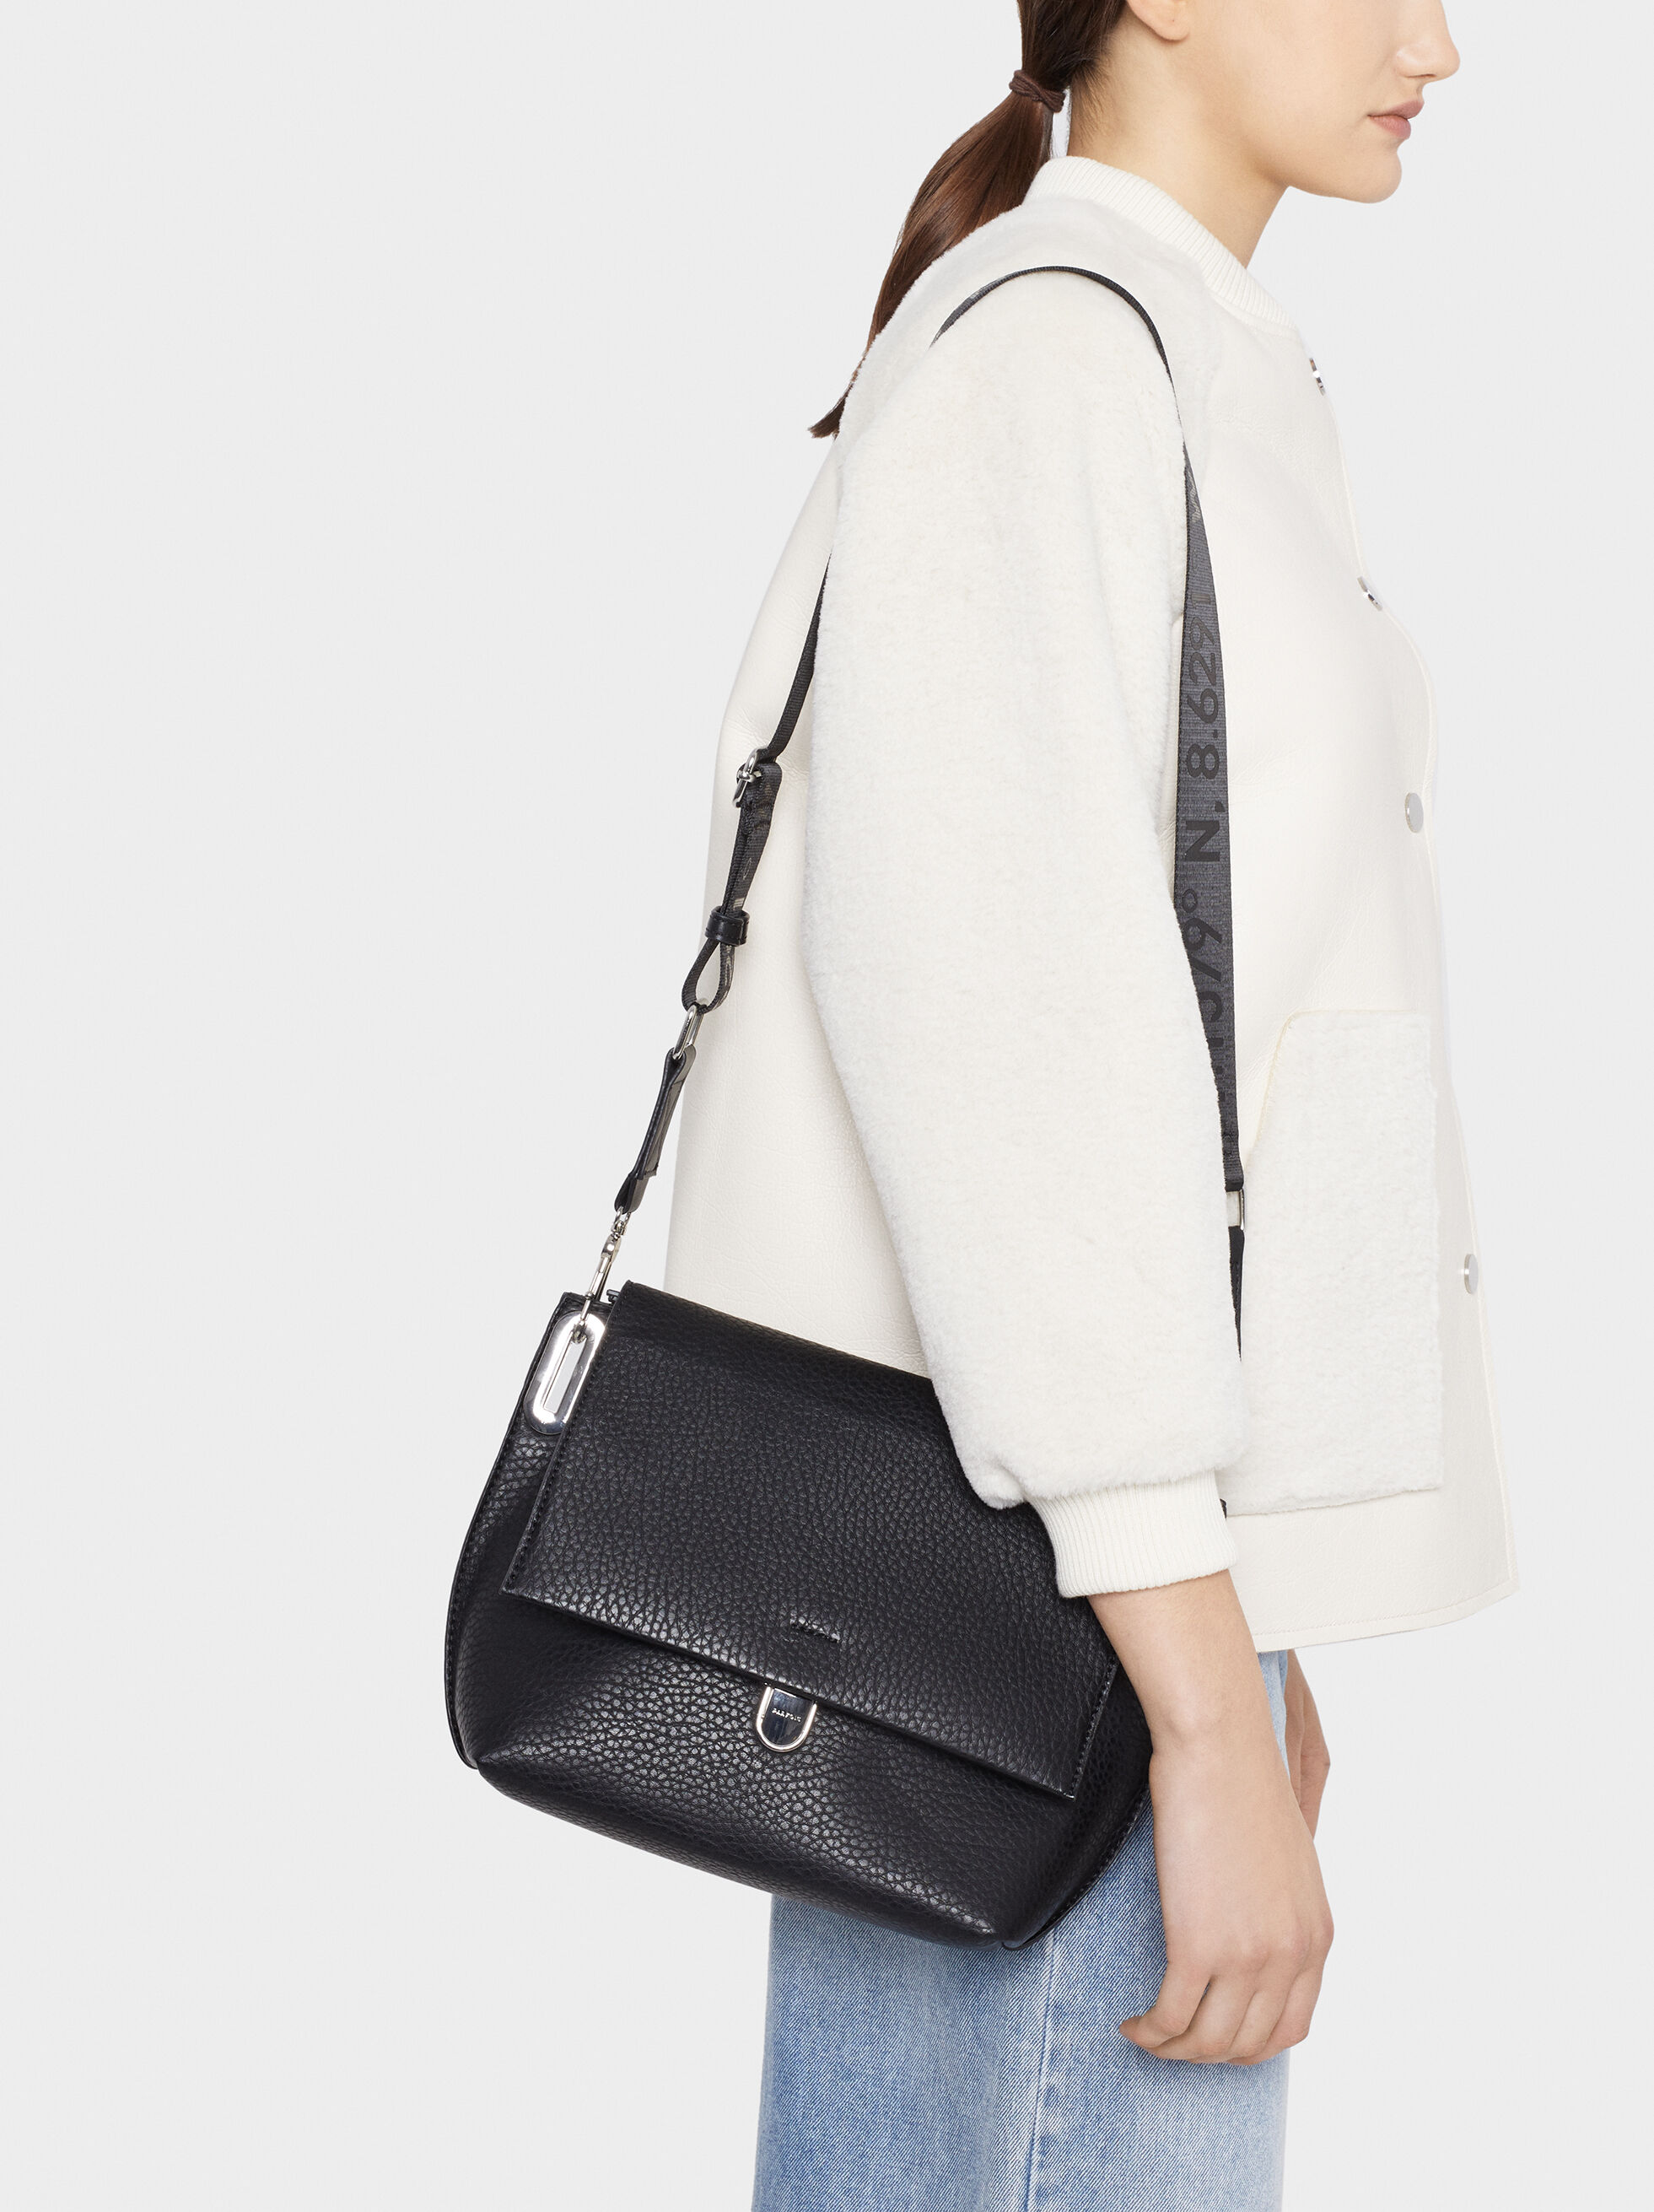 Shoulder Bag With Outer Pockets, Black, hi-res